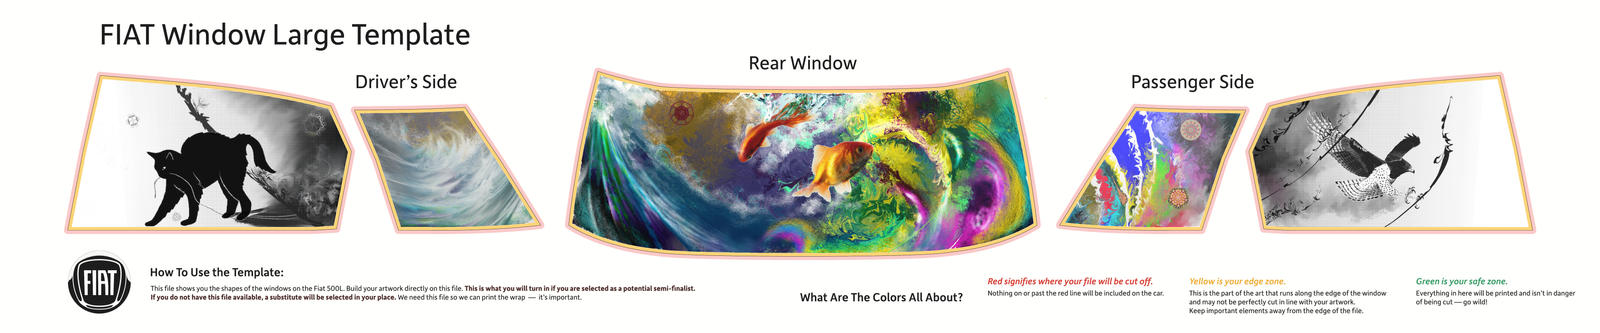 FIAT Window Large Template 01 by oikidoki